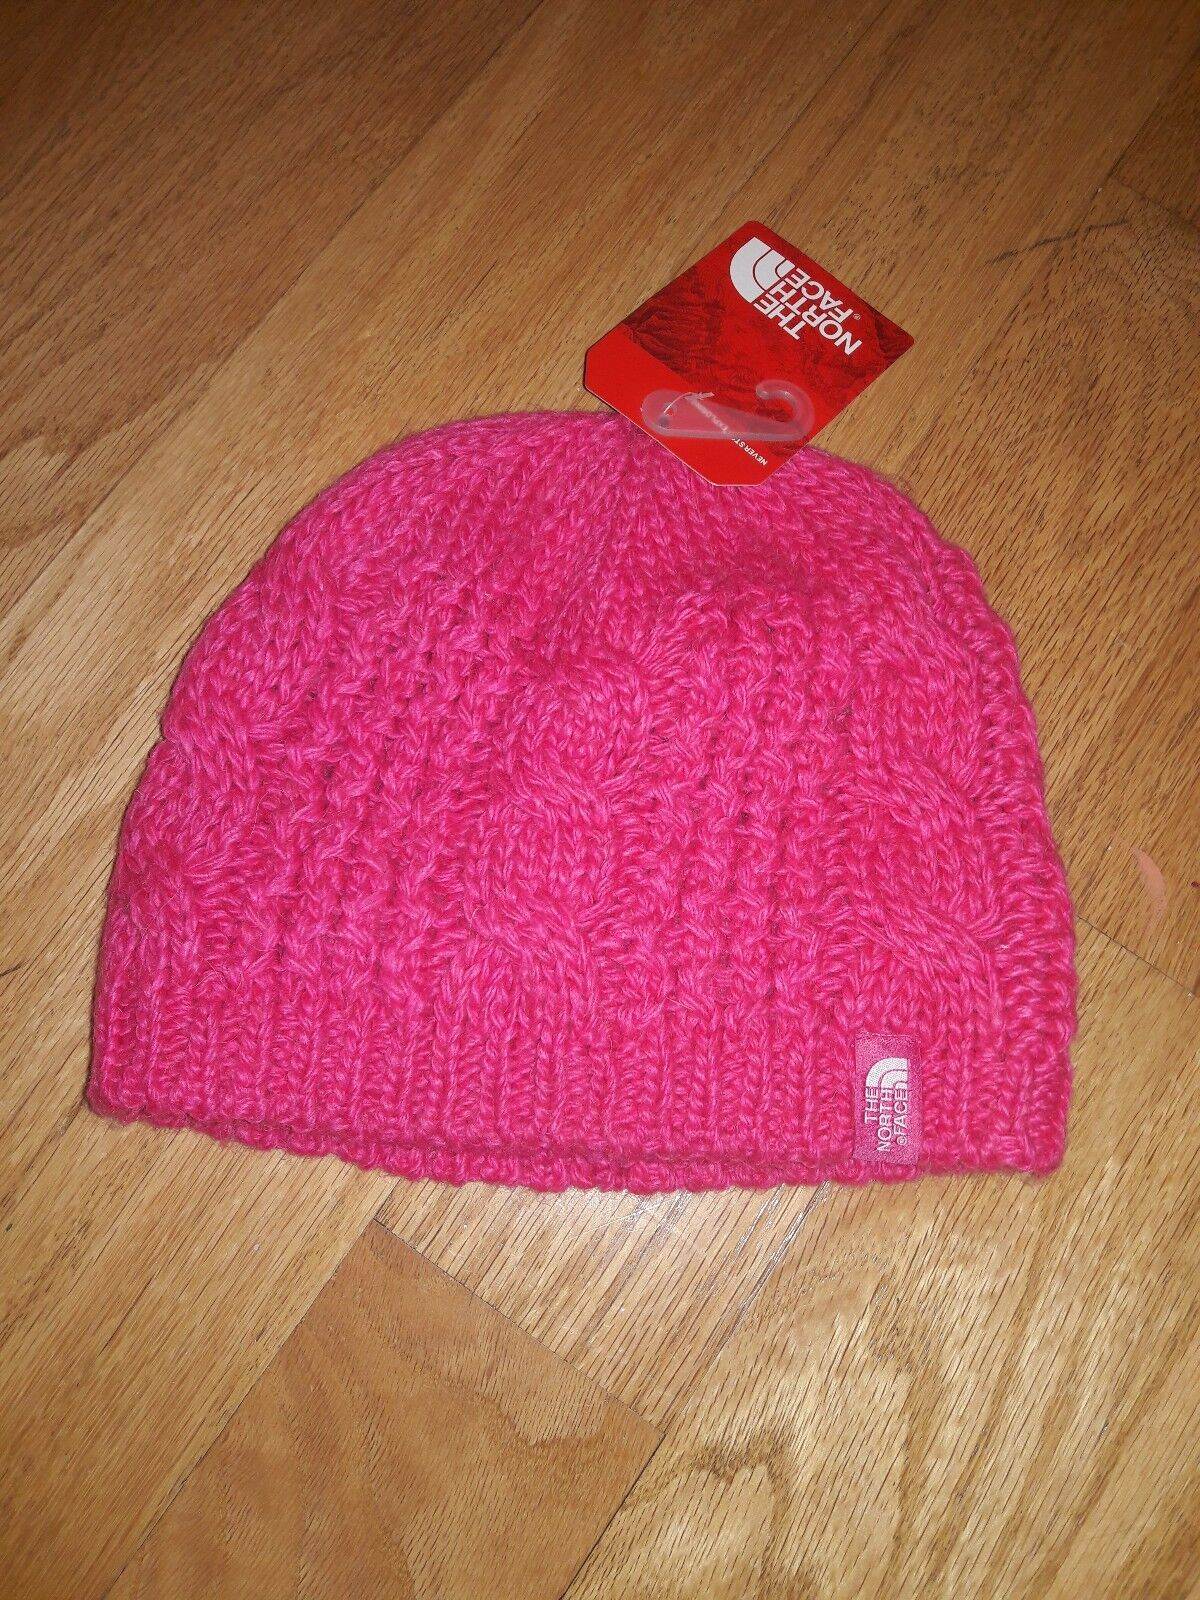 76915544322ef The North Face Youth Medium Cable Minna Beanie Cabaret Pink M for ...